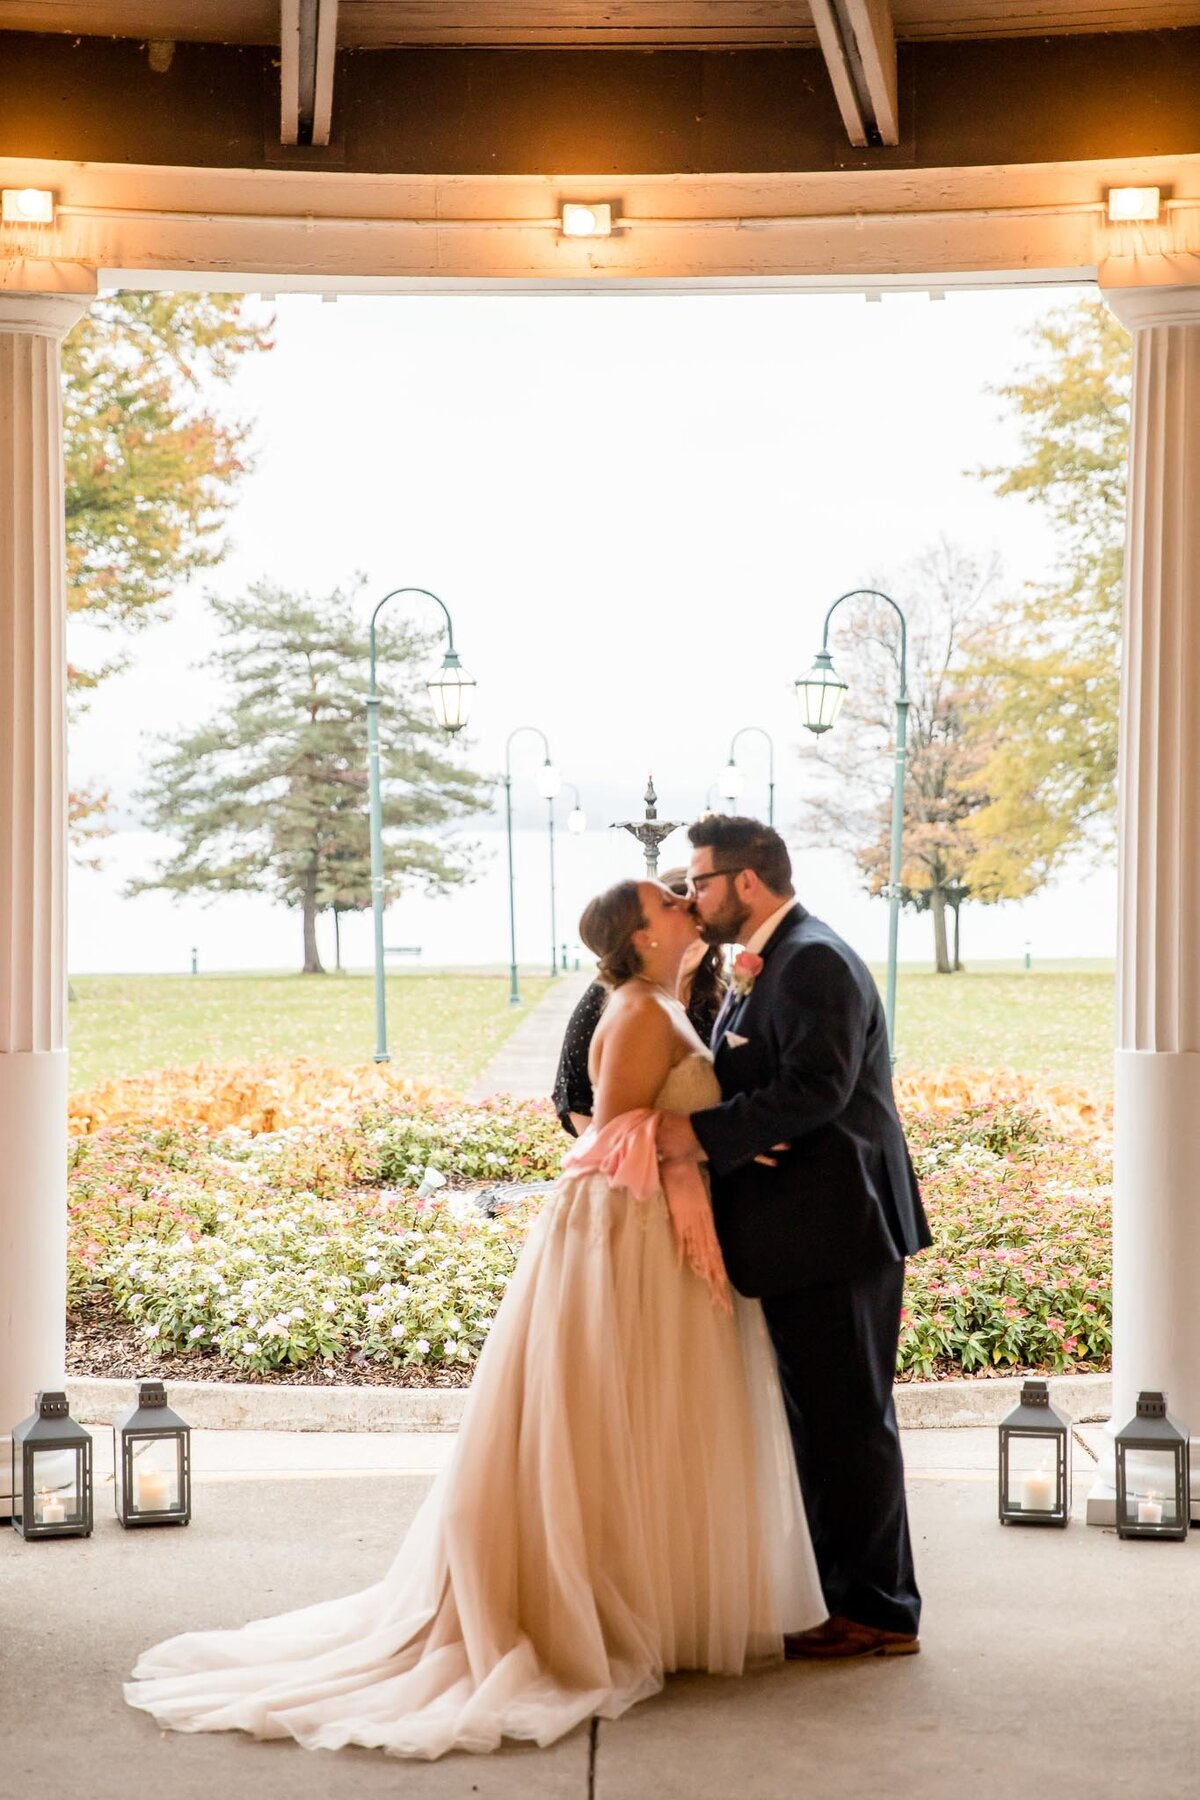 Rachel-Elise-Photography-Syracuse-New-York-Wedding-Photographer-118